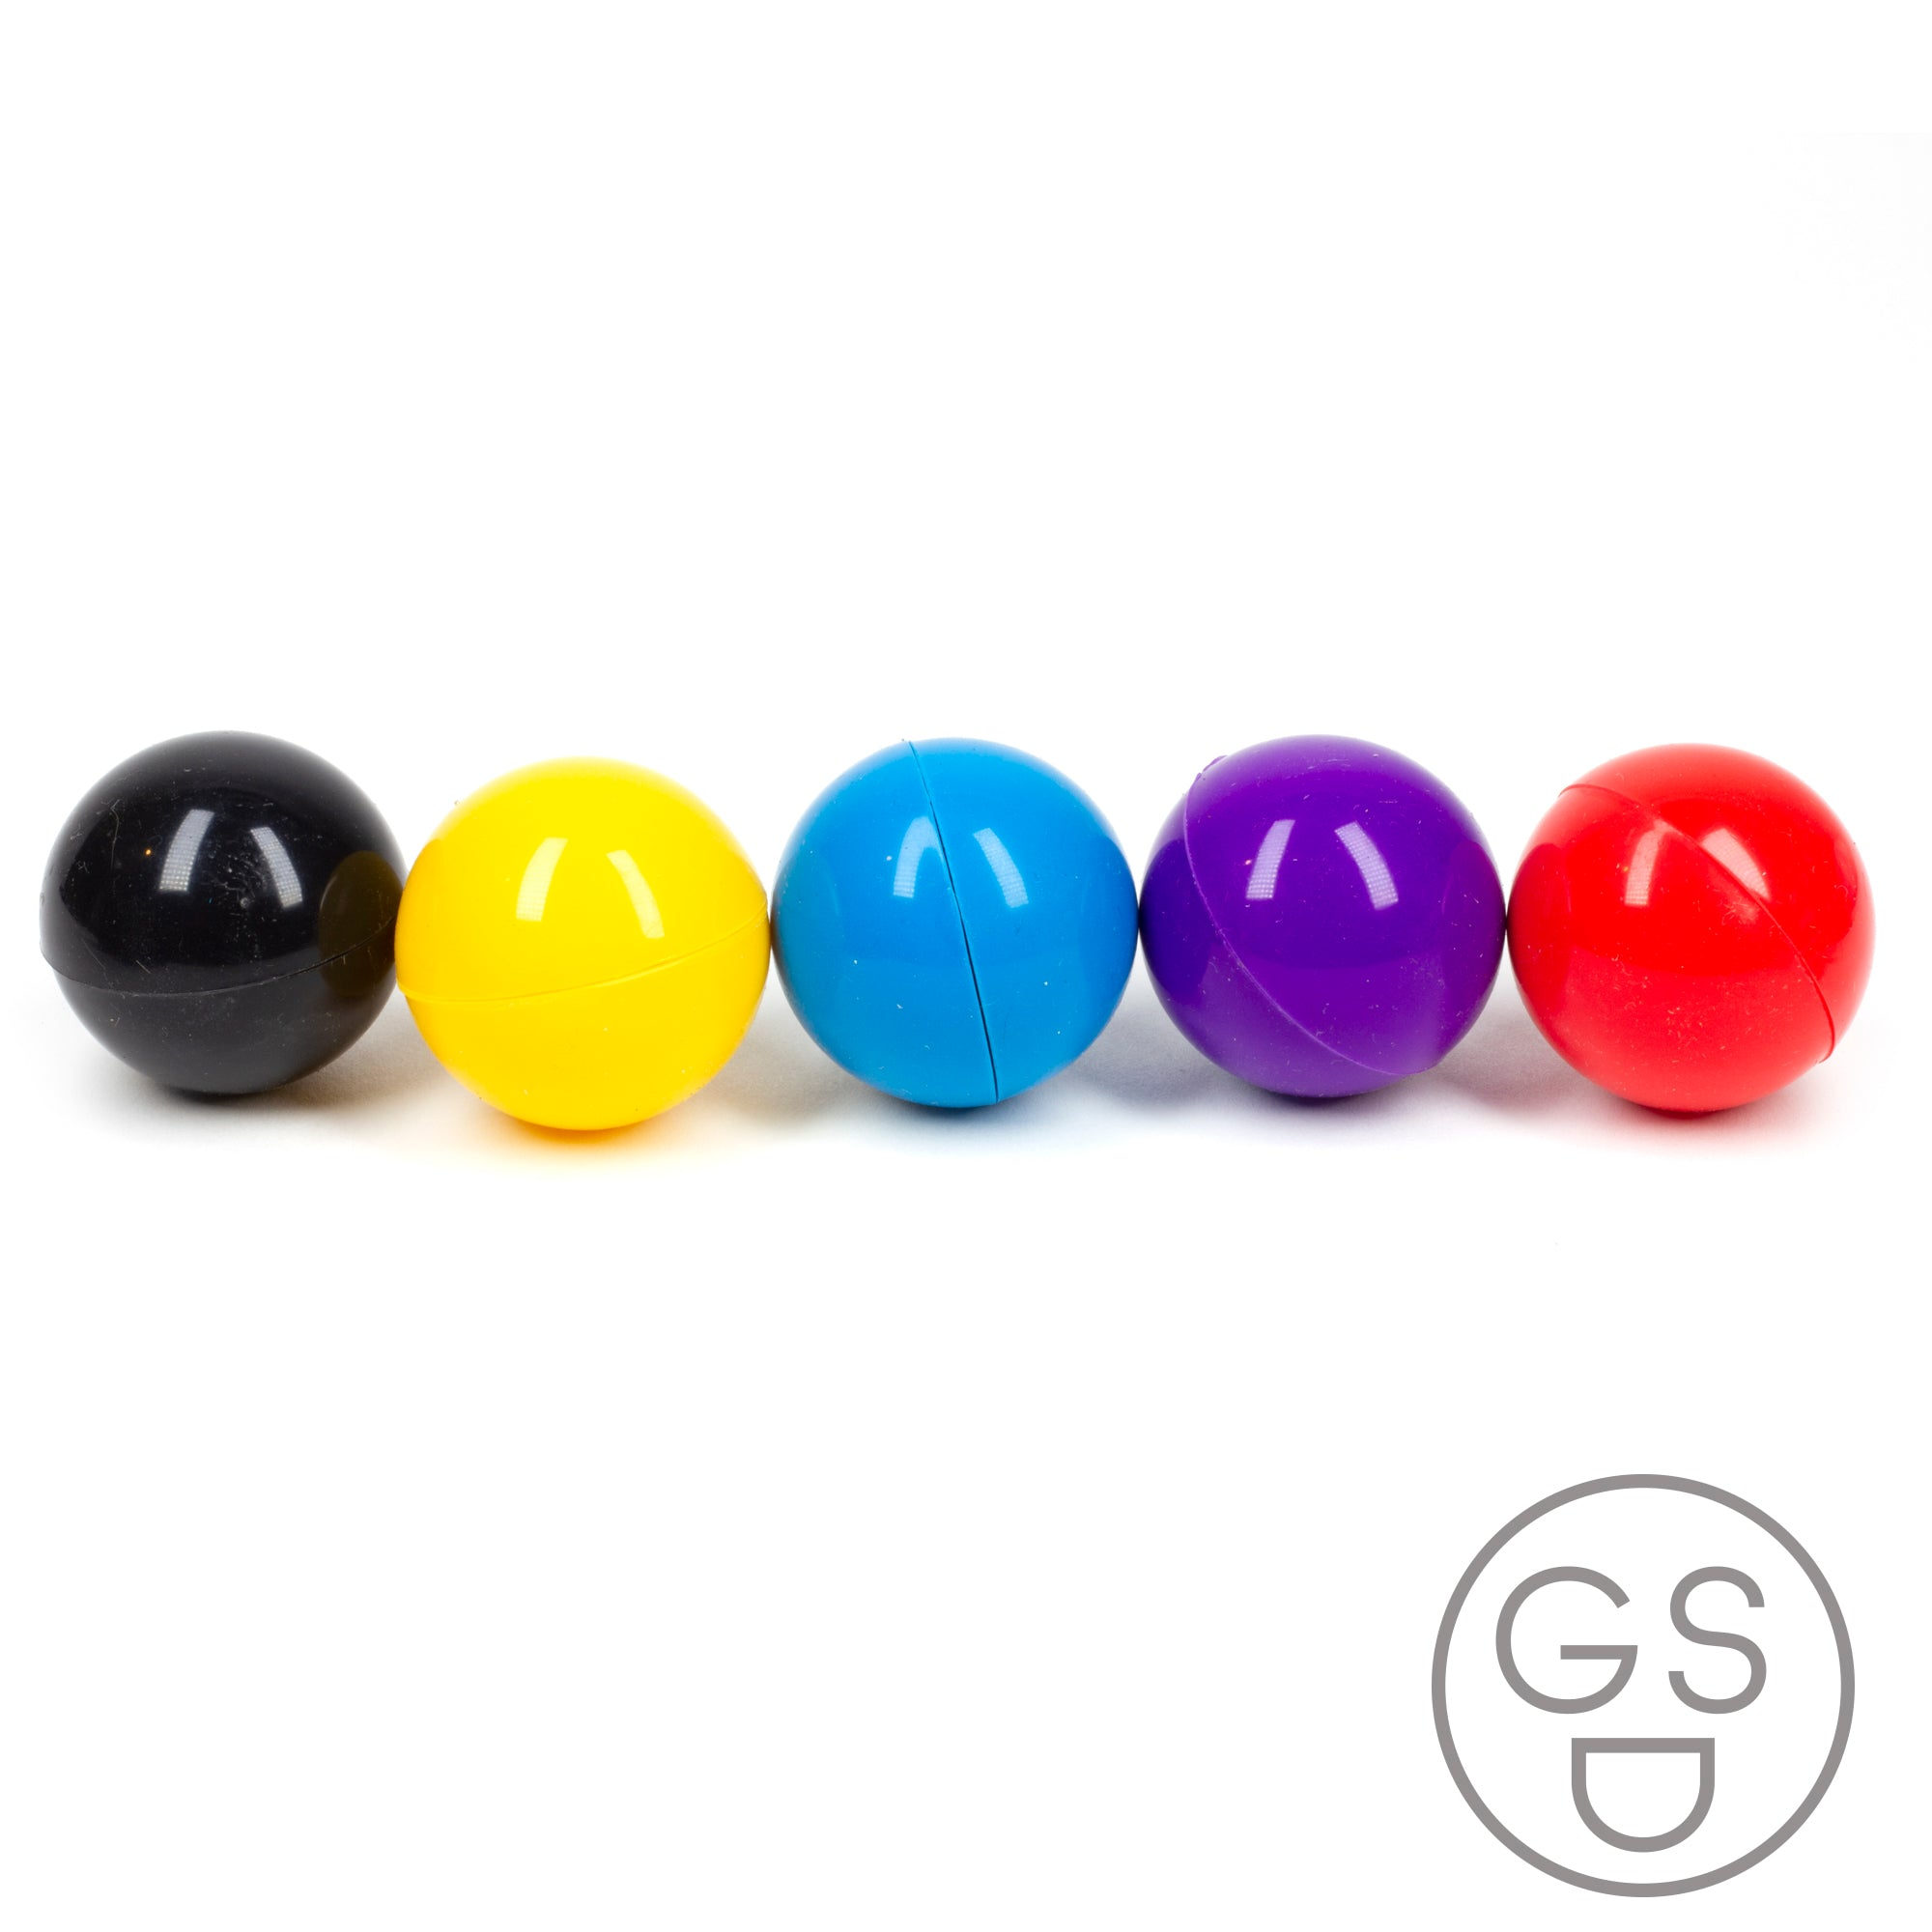 "Dealz 1.5"" Silicon Wax Storage Ball"